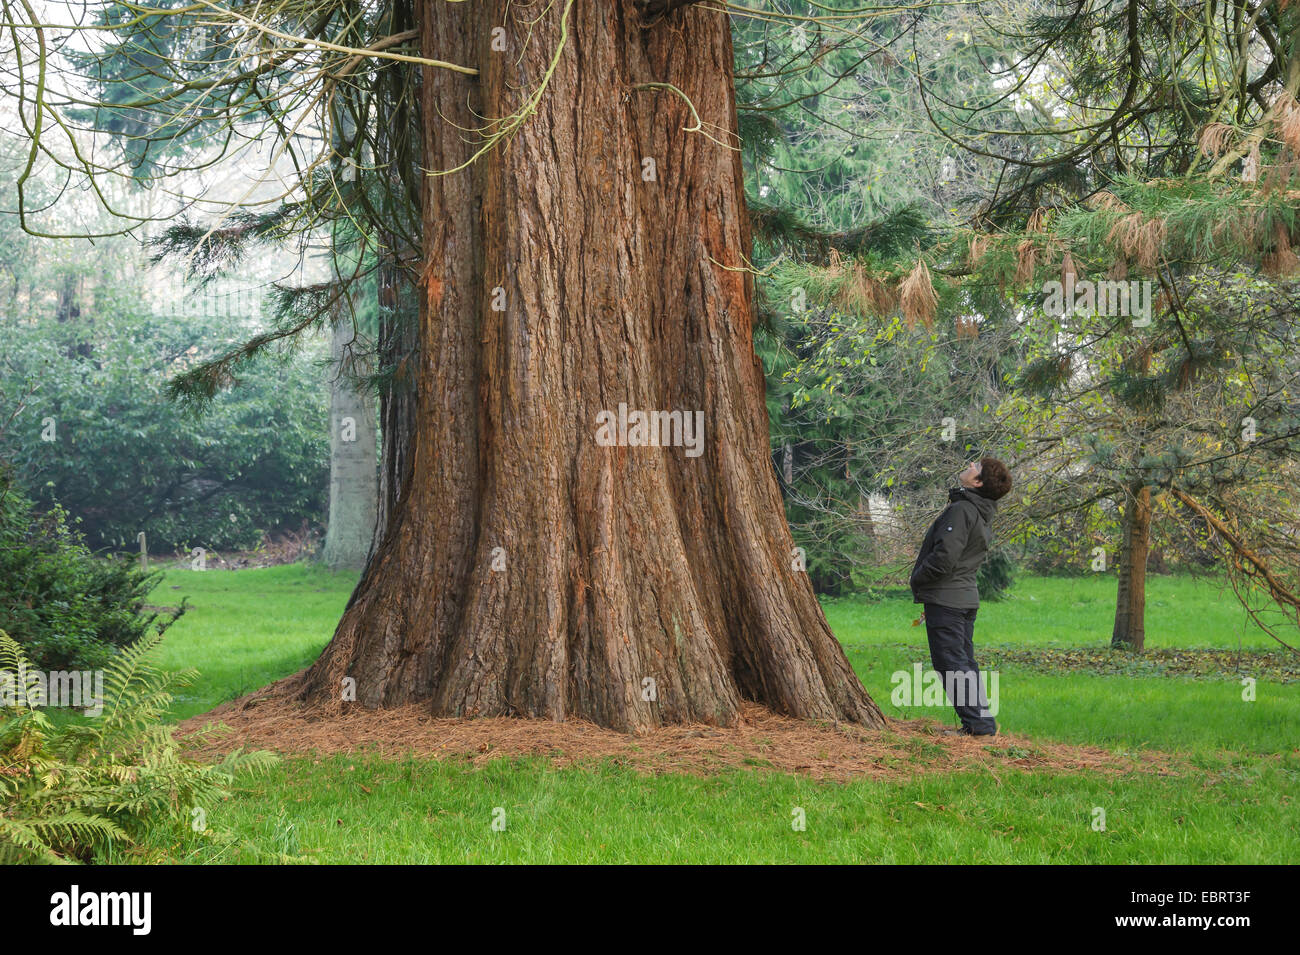 giant sequoia, giant redwood (Sequoiadendron giganteum), woman looking up a tree trunk, Germany, Mecklenburg-Western - Stock Image